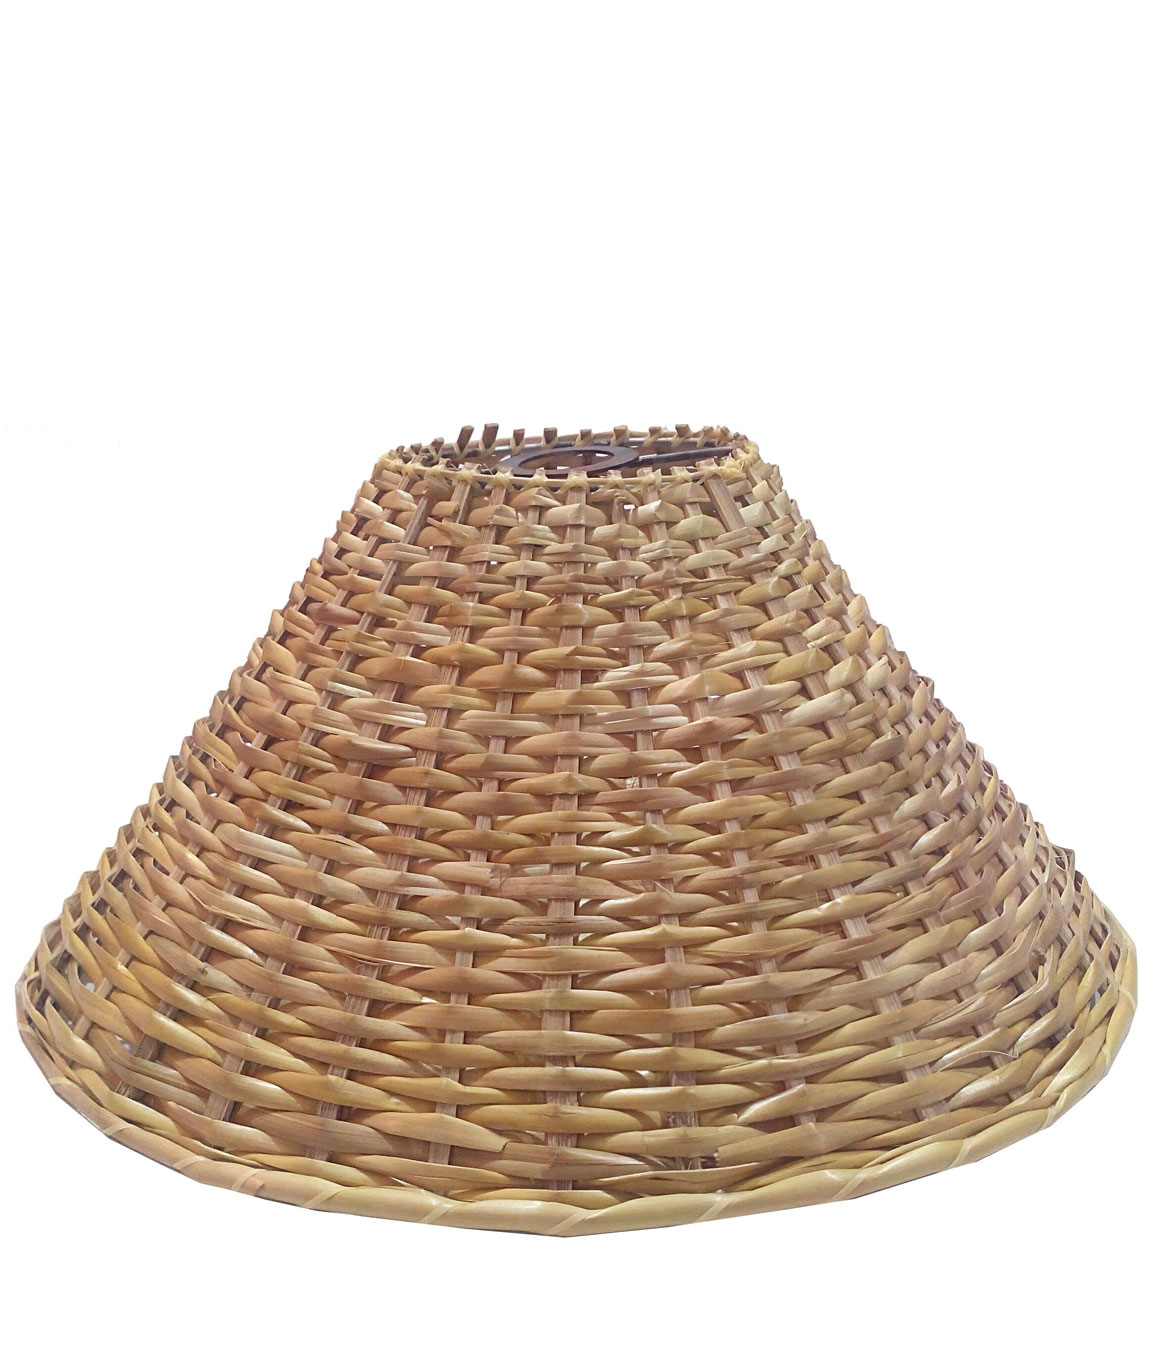 RDC 13 Inches Round Cane Hanging Pendant Lamp Shade